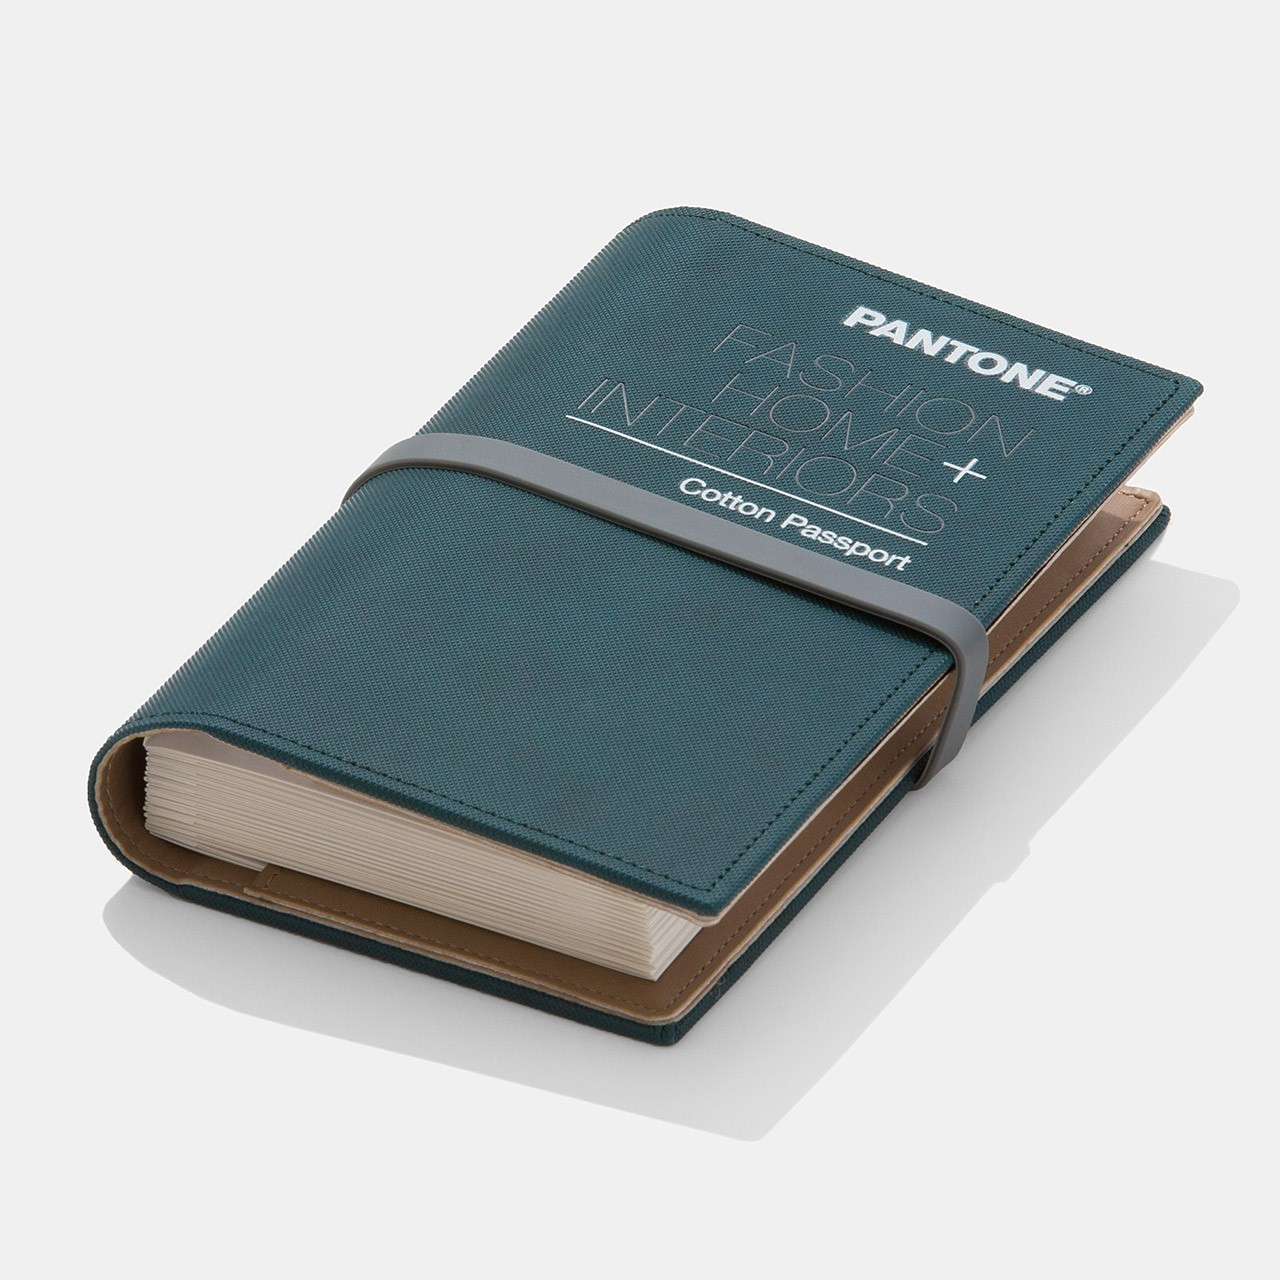 fhic200b - Pantone Cotton Passport